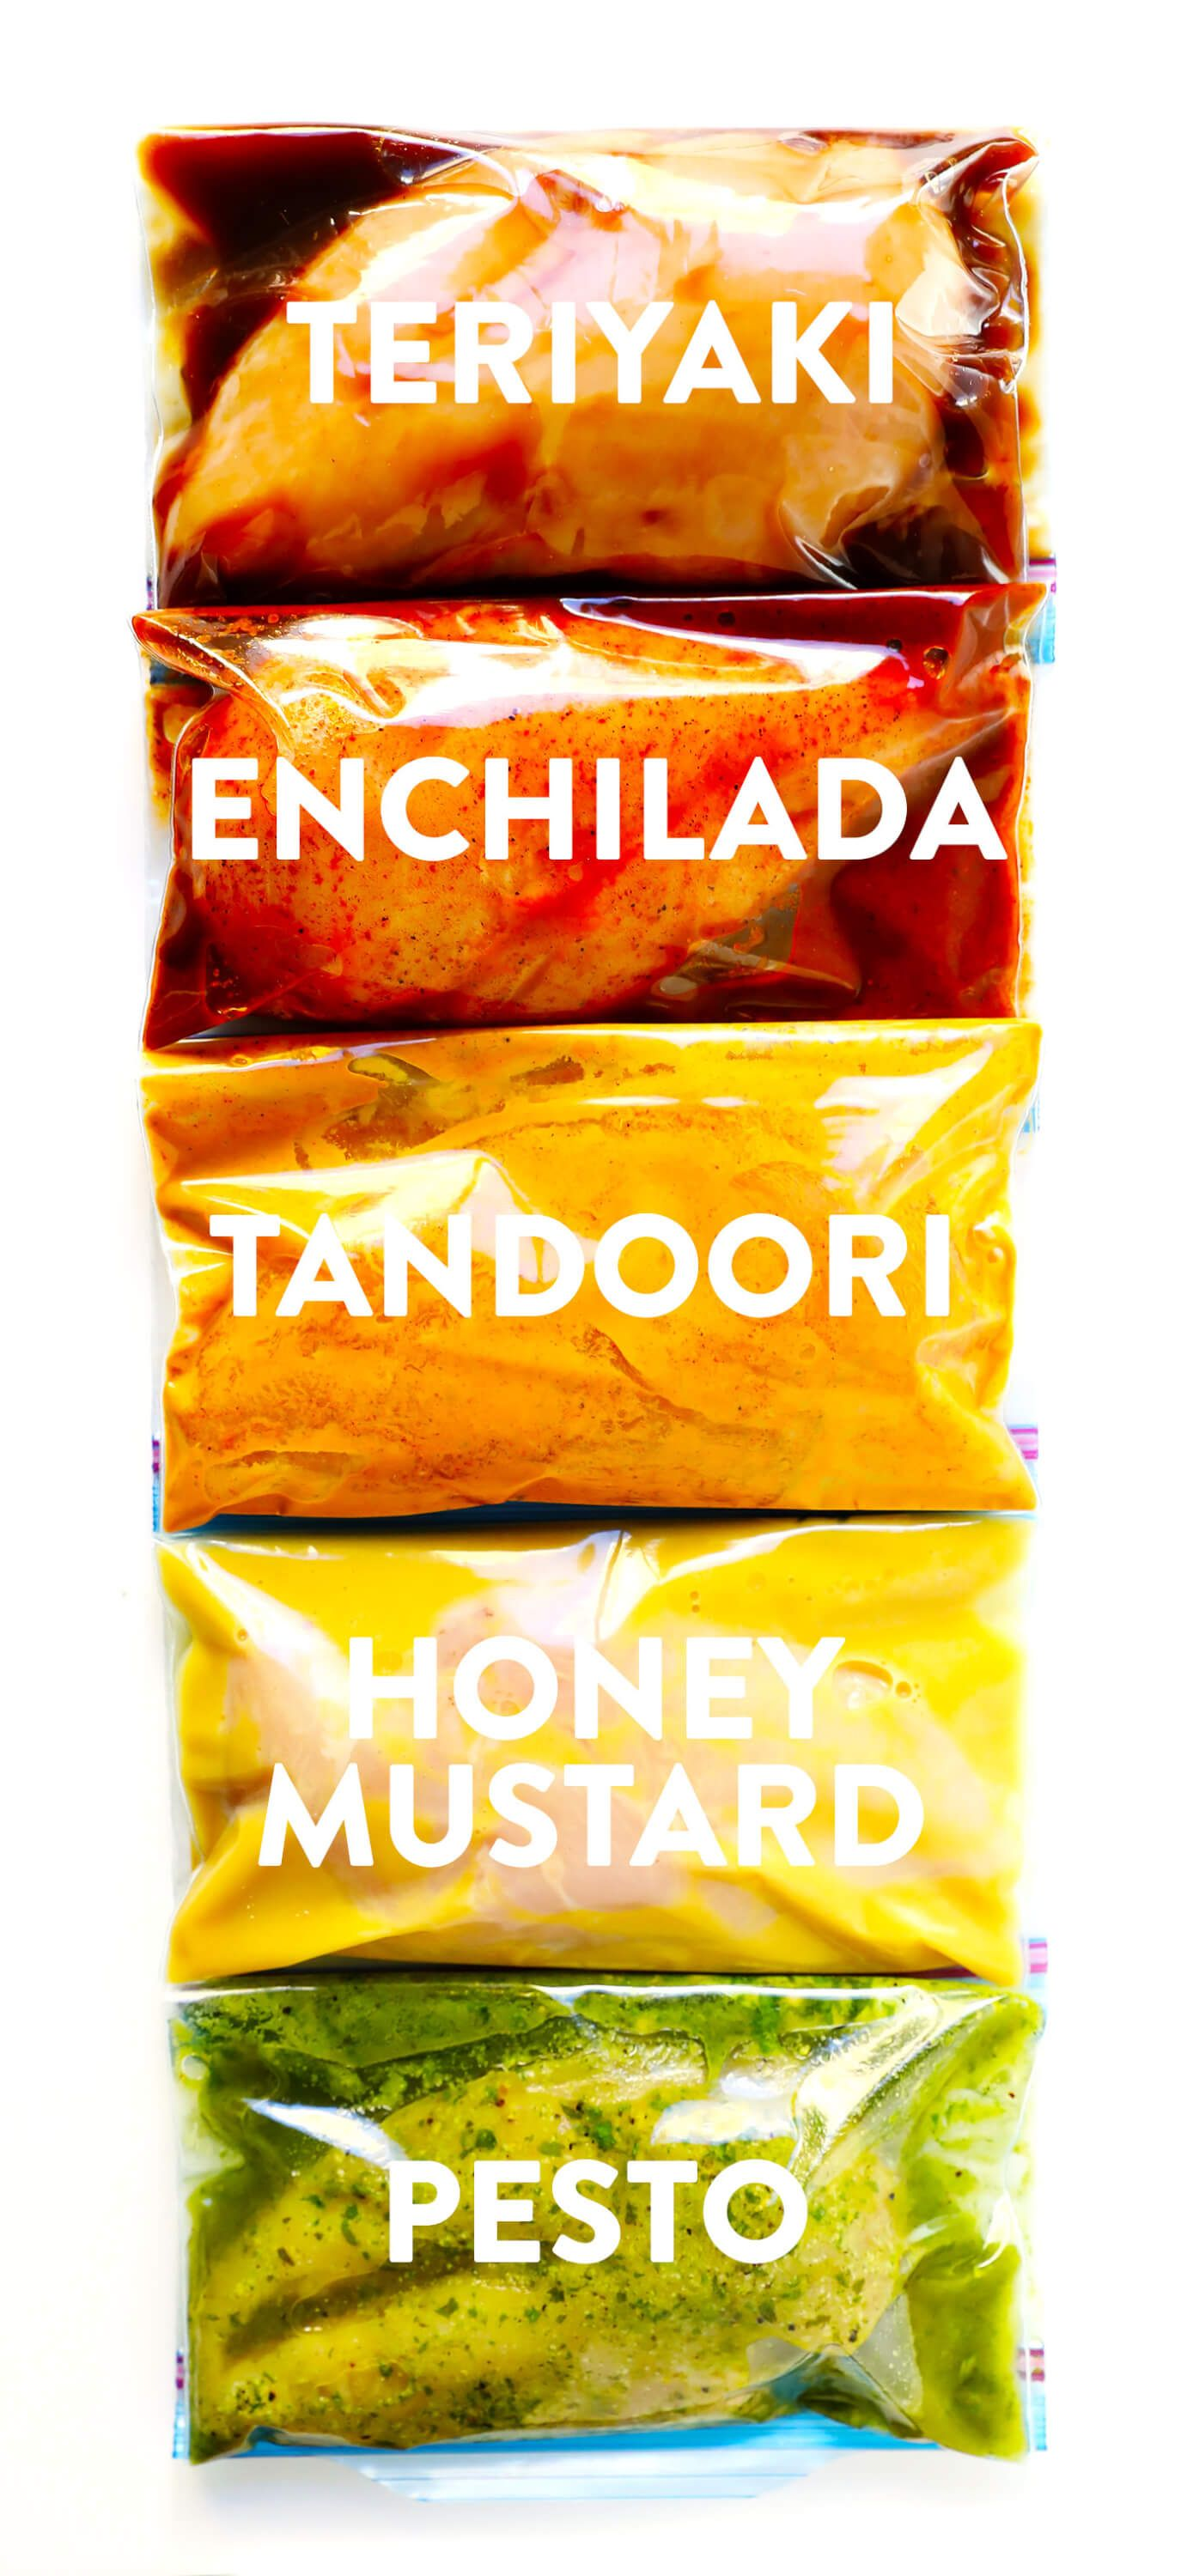 These 5 Easy Chicken Marinade Recipes -- Teriyaki, Enchilada, Tandoori, Honey Mustard and Pesto -- are freezer-friendly (perfect for meal prep), naturally gluten-free, easy to make, and SO delicious. Perfect for chicken, steak, pork, and tofu. And flexible for baked, grilled, sautéed, or slow cooker chicken. | Gimme Some Oven #chickenrecipe #bakedchicken #marinaderecipe #chicken #glutenfree